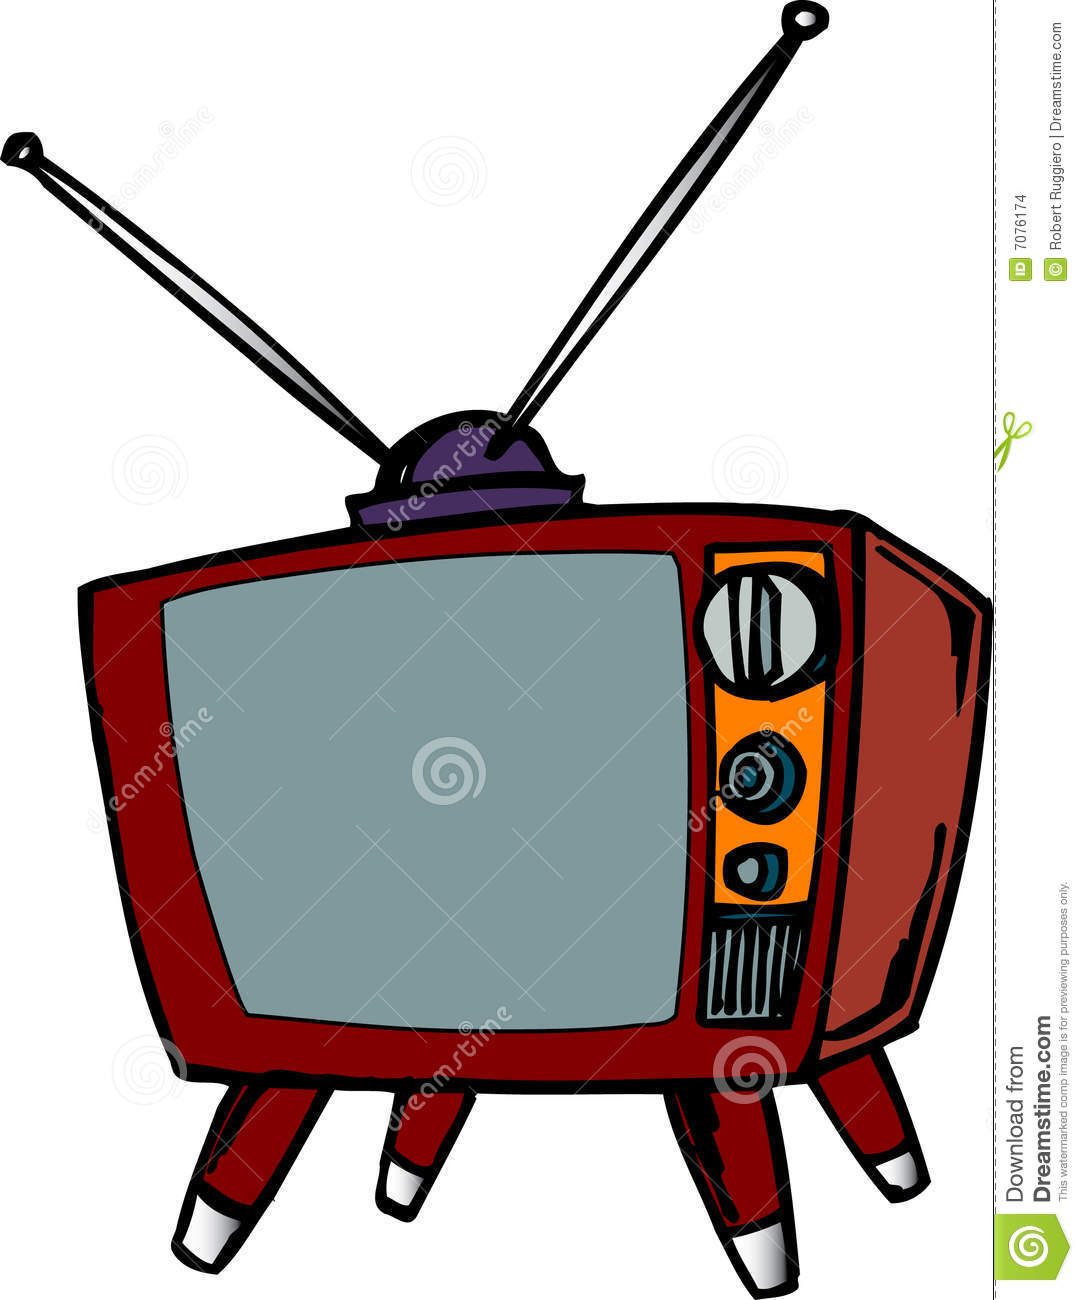 1083x1300 Tv Clipart Rabbit Ear